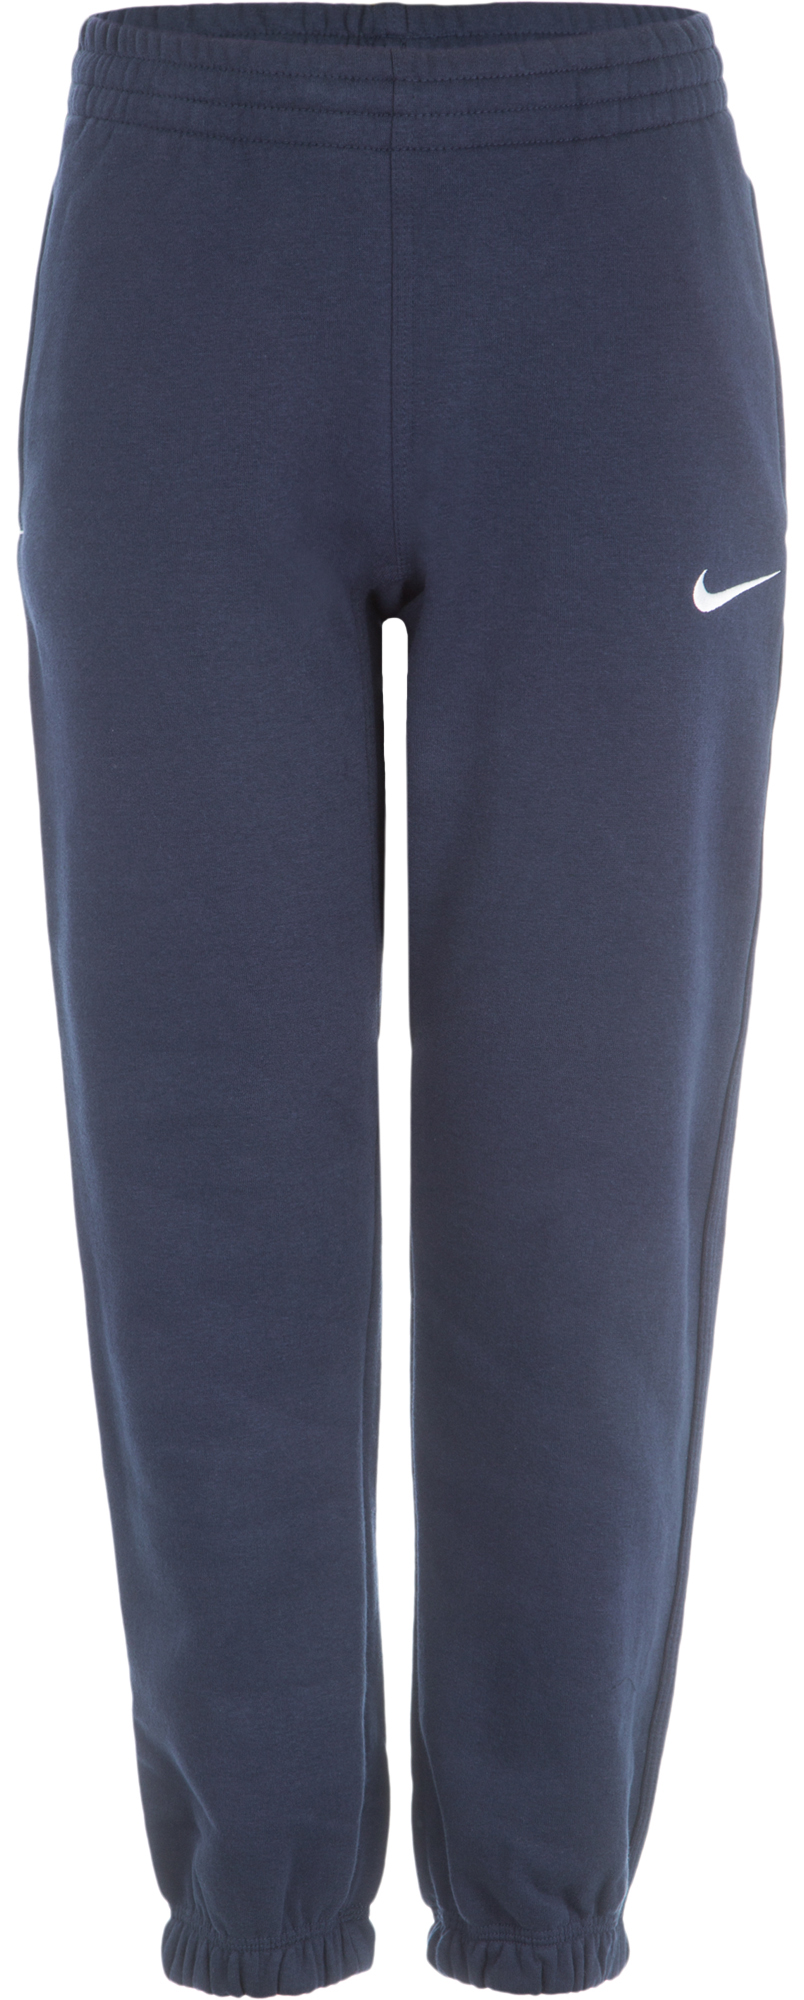 Nike Брюки для мальчиков Nike Fleece Cuffed high waist skinny jeans extra long pencil pants plus size blue denim trousers 14 16 18 20 22w 24l l32 34 36 38 40w xxxl 4xl 5xl